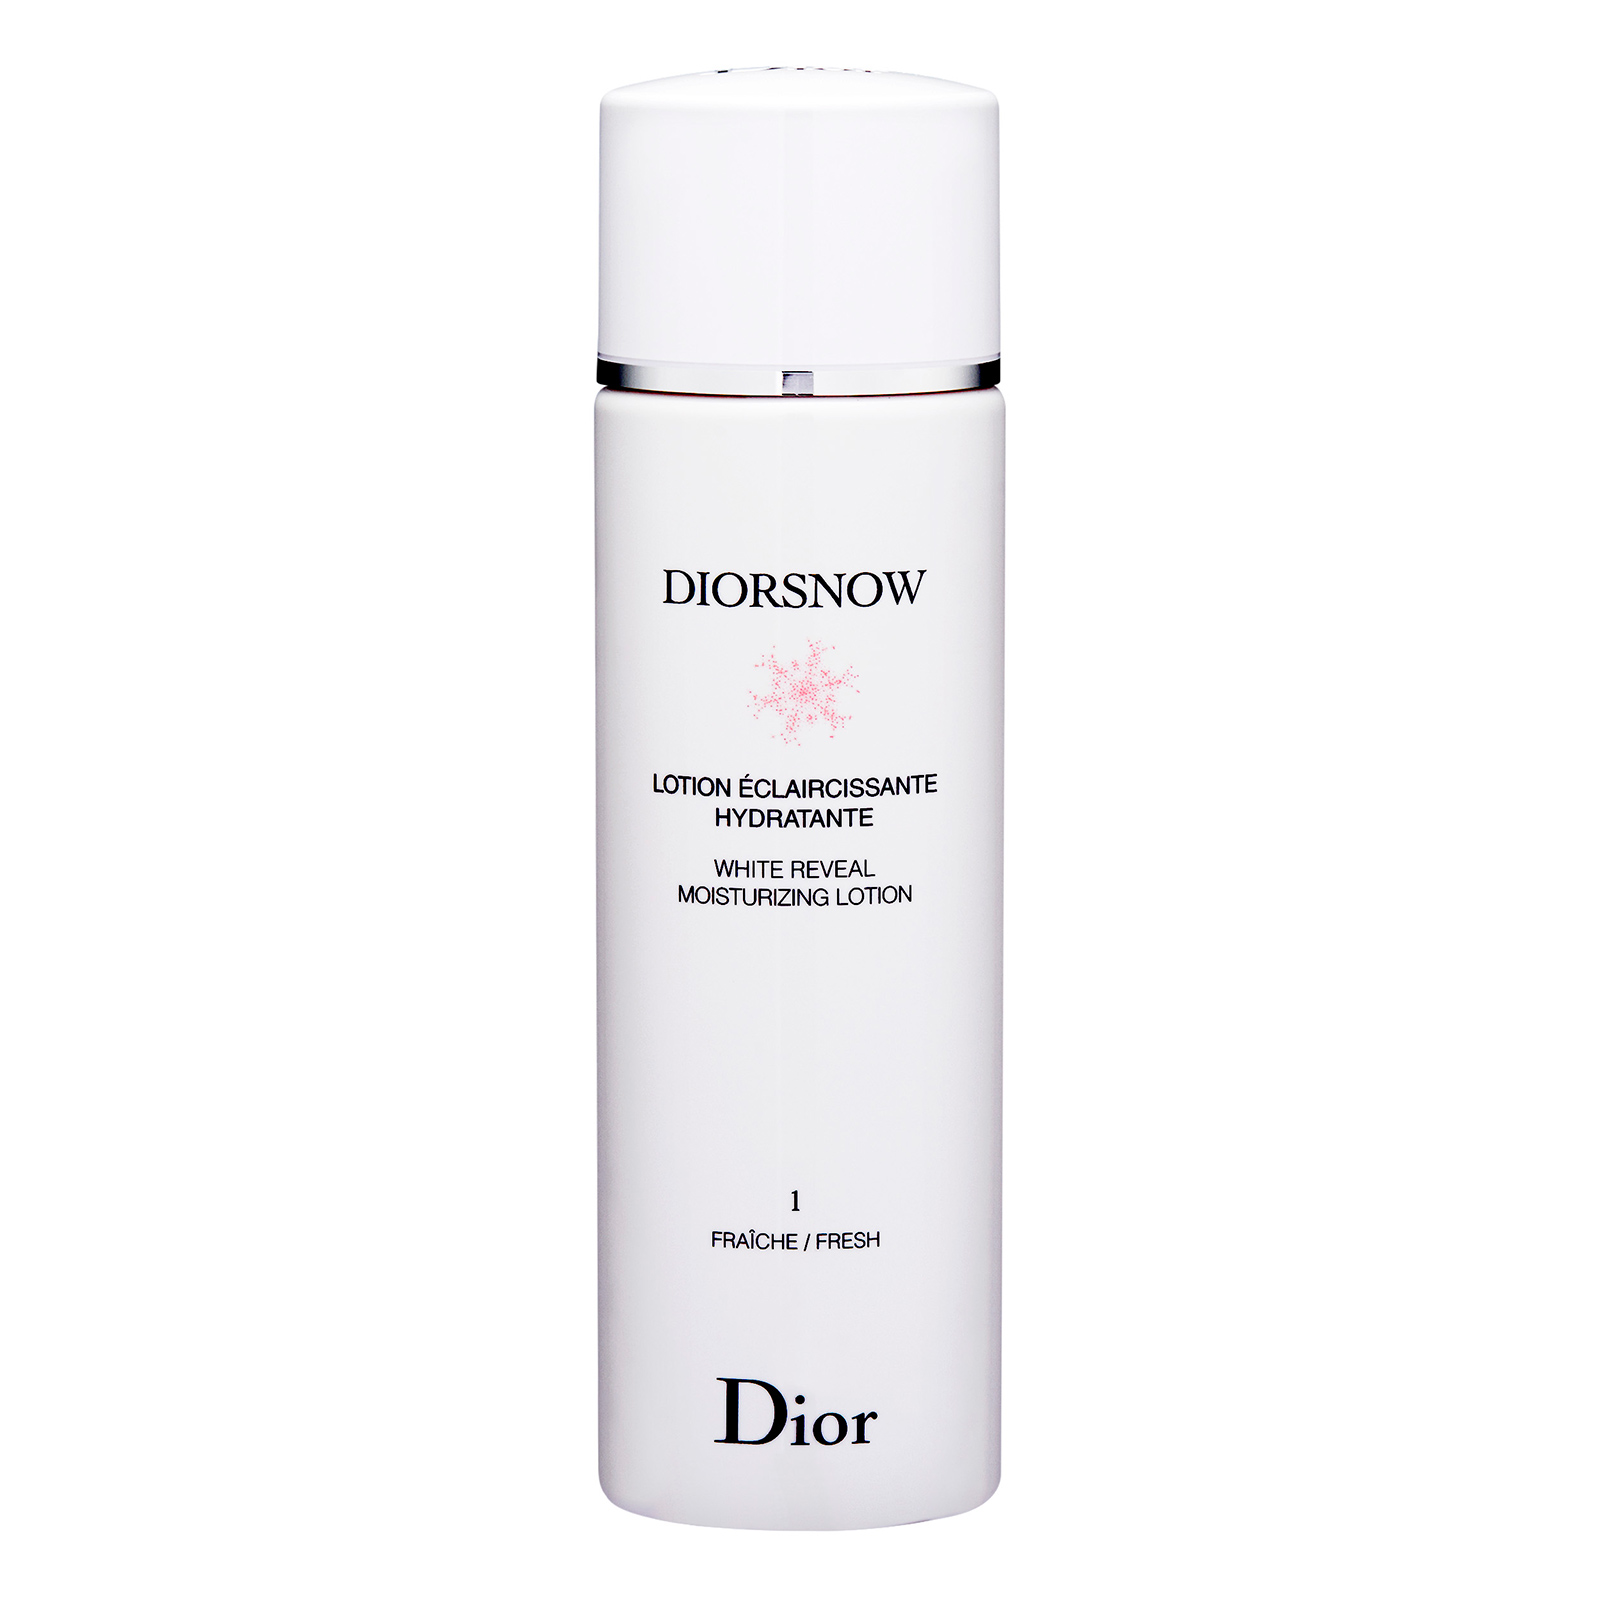 Christian Dior DiorSnow White Reveal Moisturizing Lotion (With Icelandic Glacial™ Water) 1 Fresh 清爽, 6.7oz, 200ml